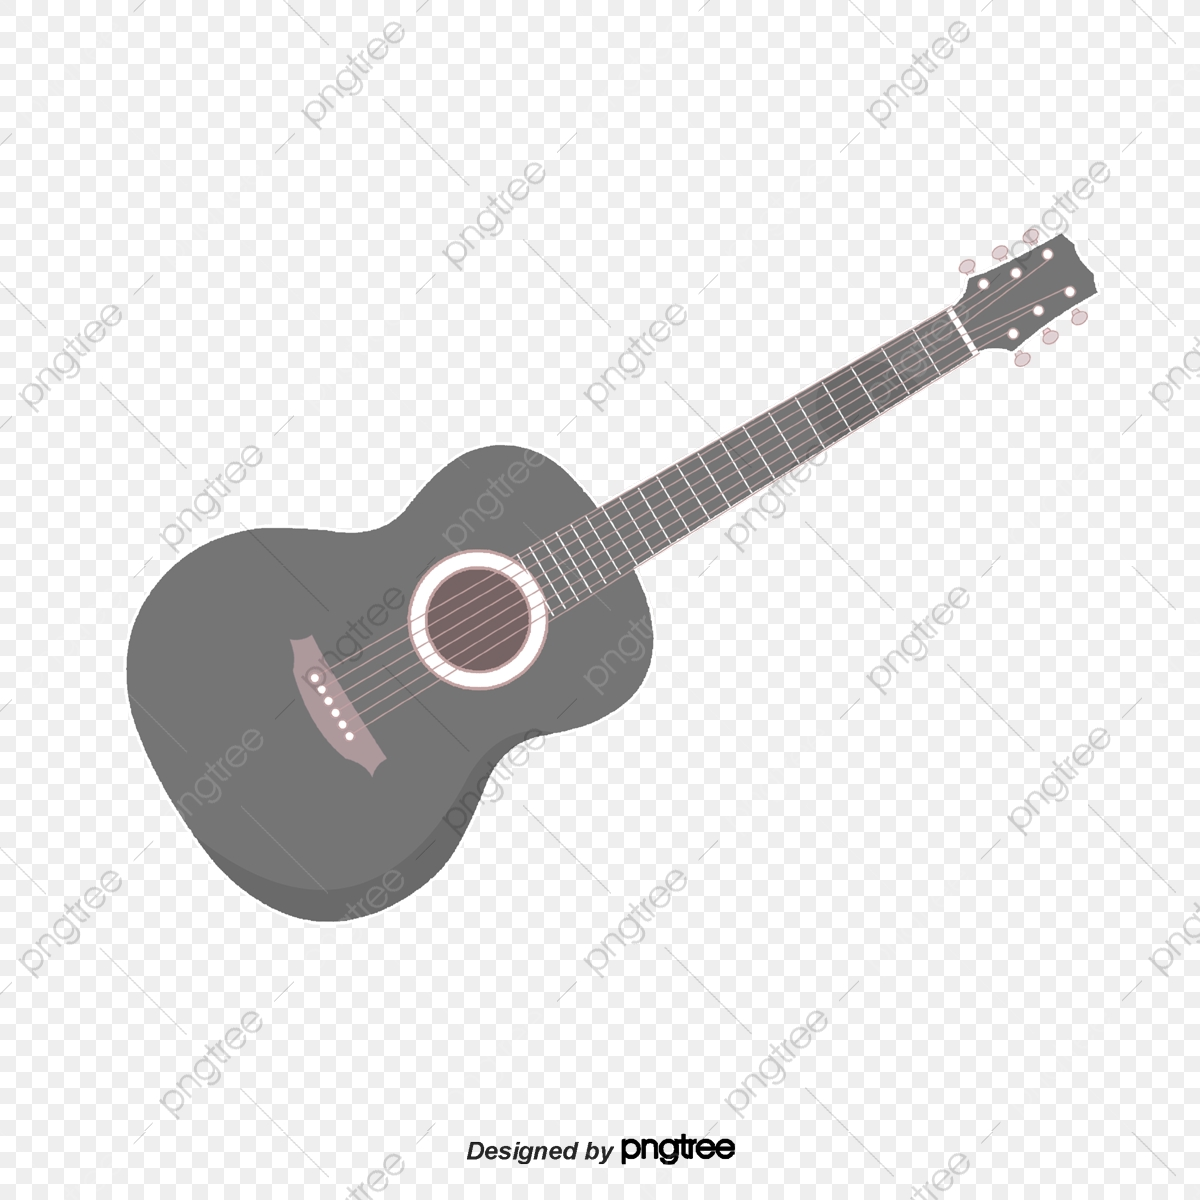 Download Black And White Guitar Transparent Image Clipart PNG Free |  FreePngClipart